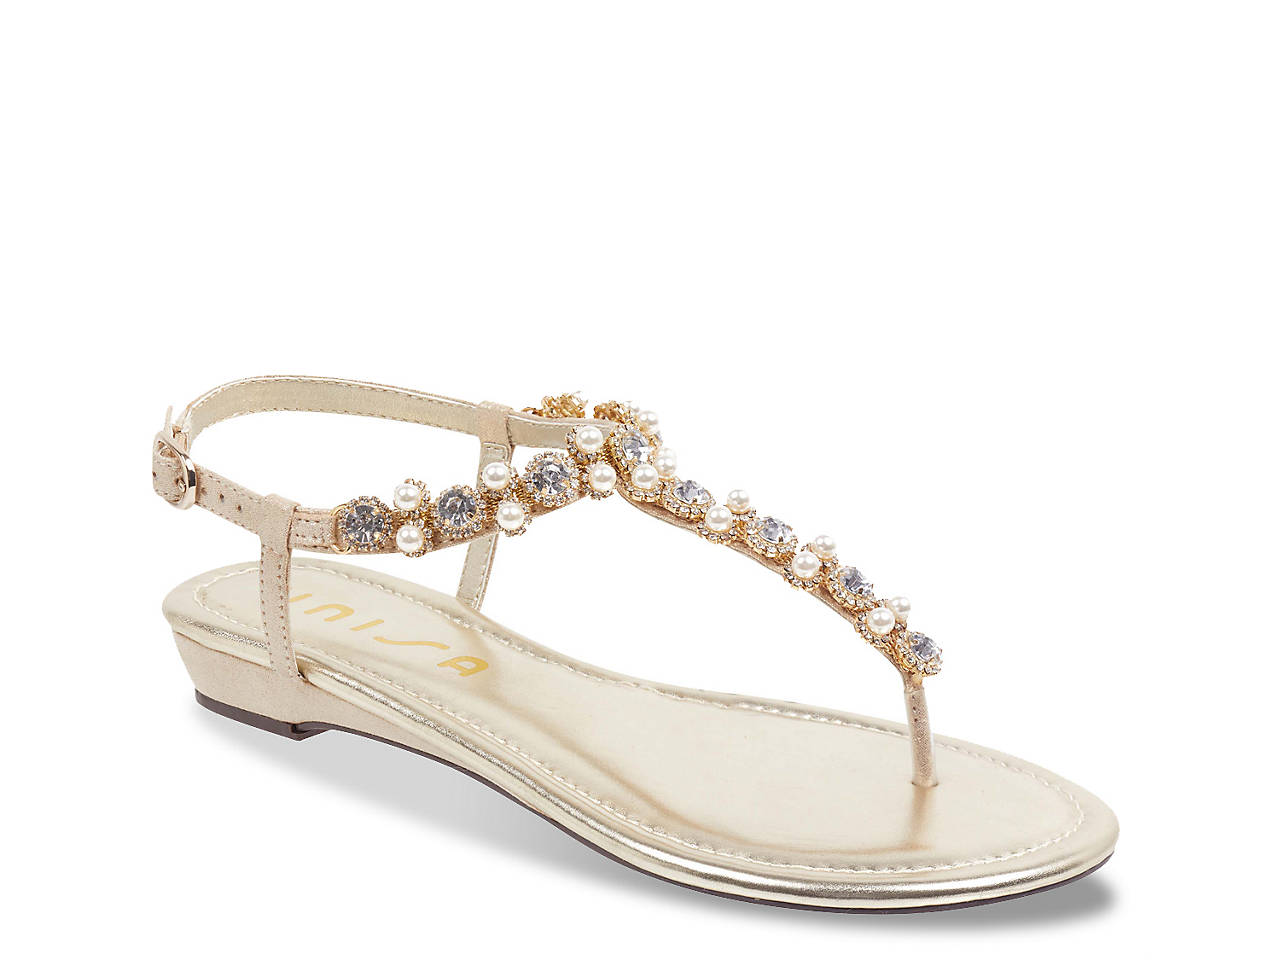 9a1b62648 Unisa Liybo Flat Sandal Women s Shoes